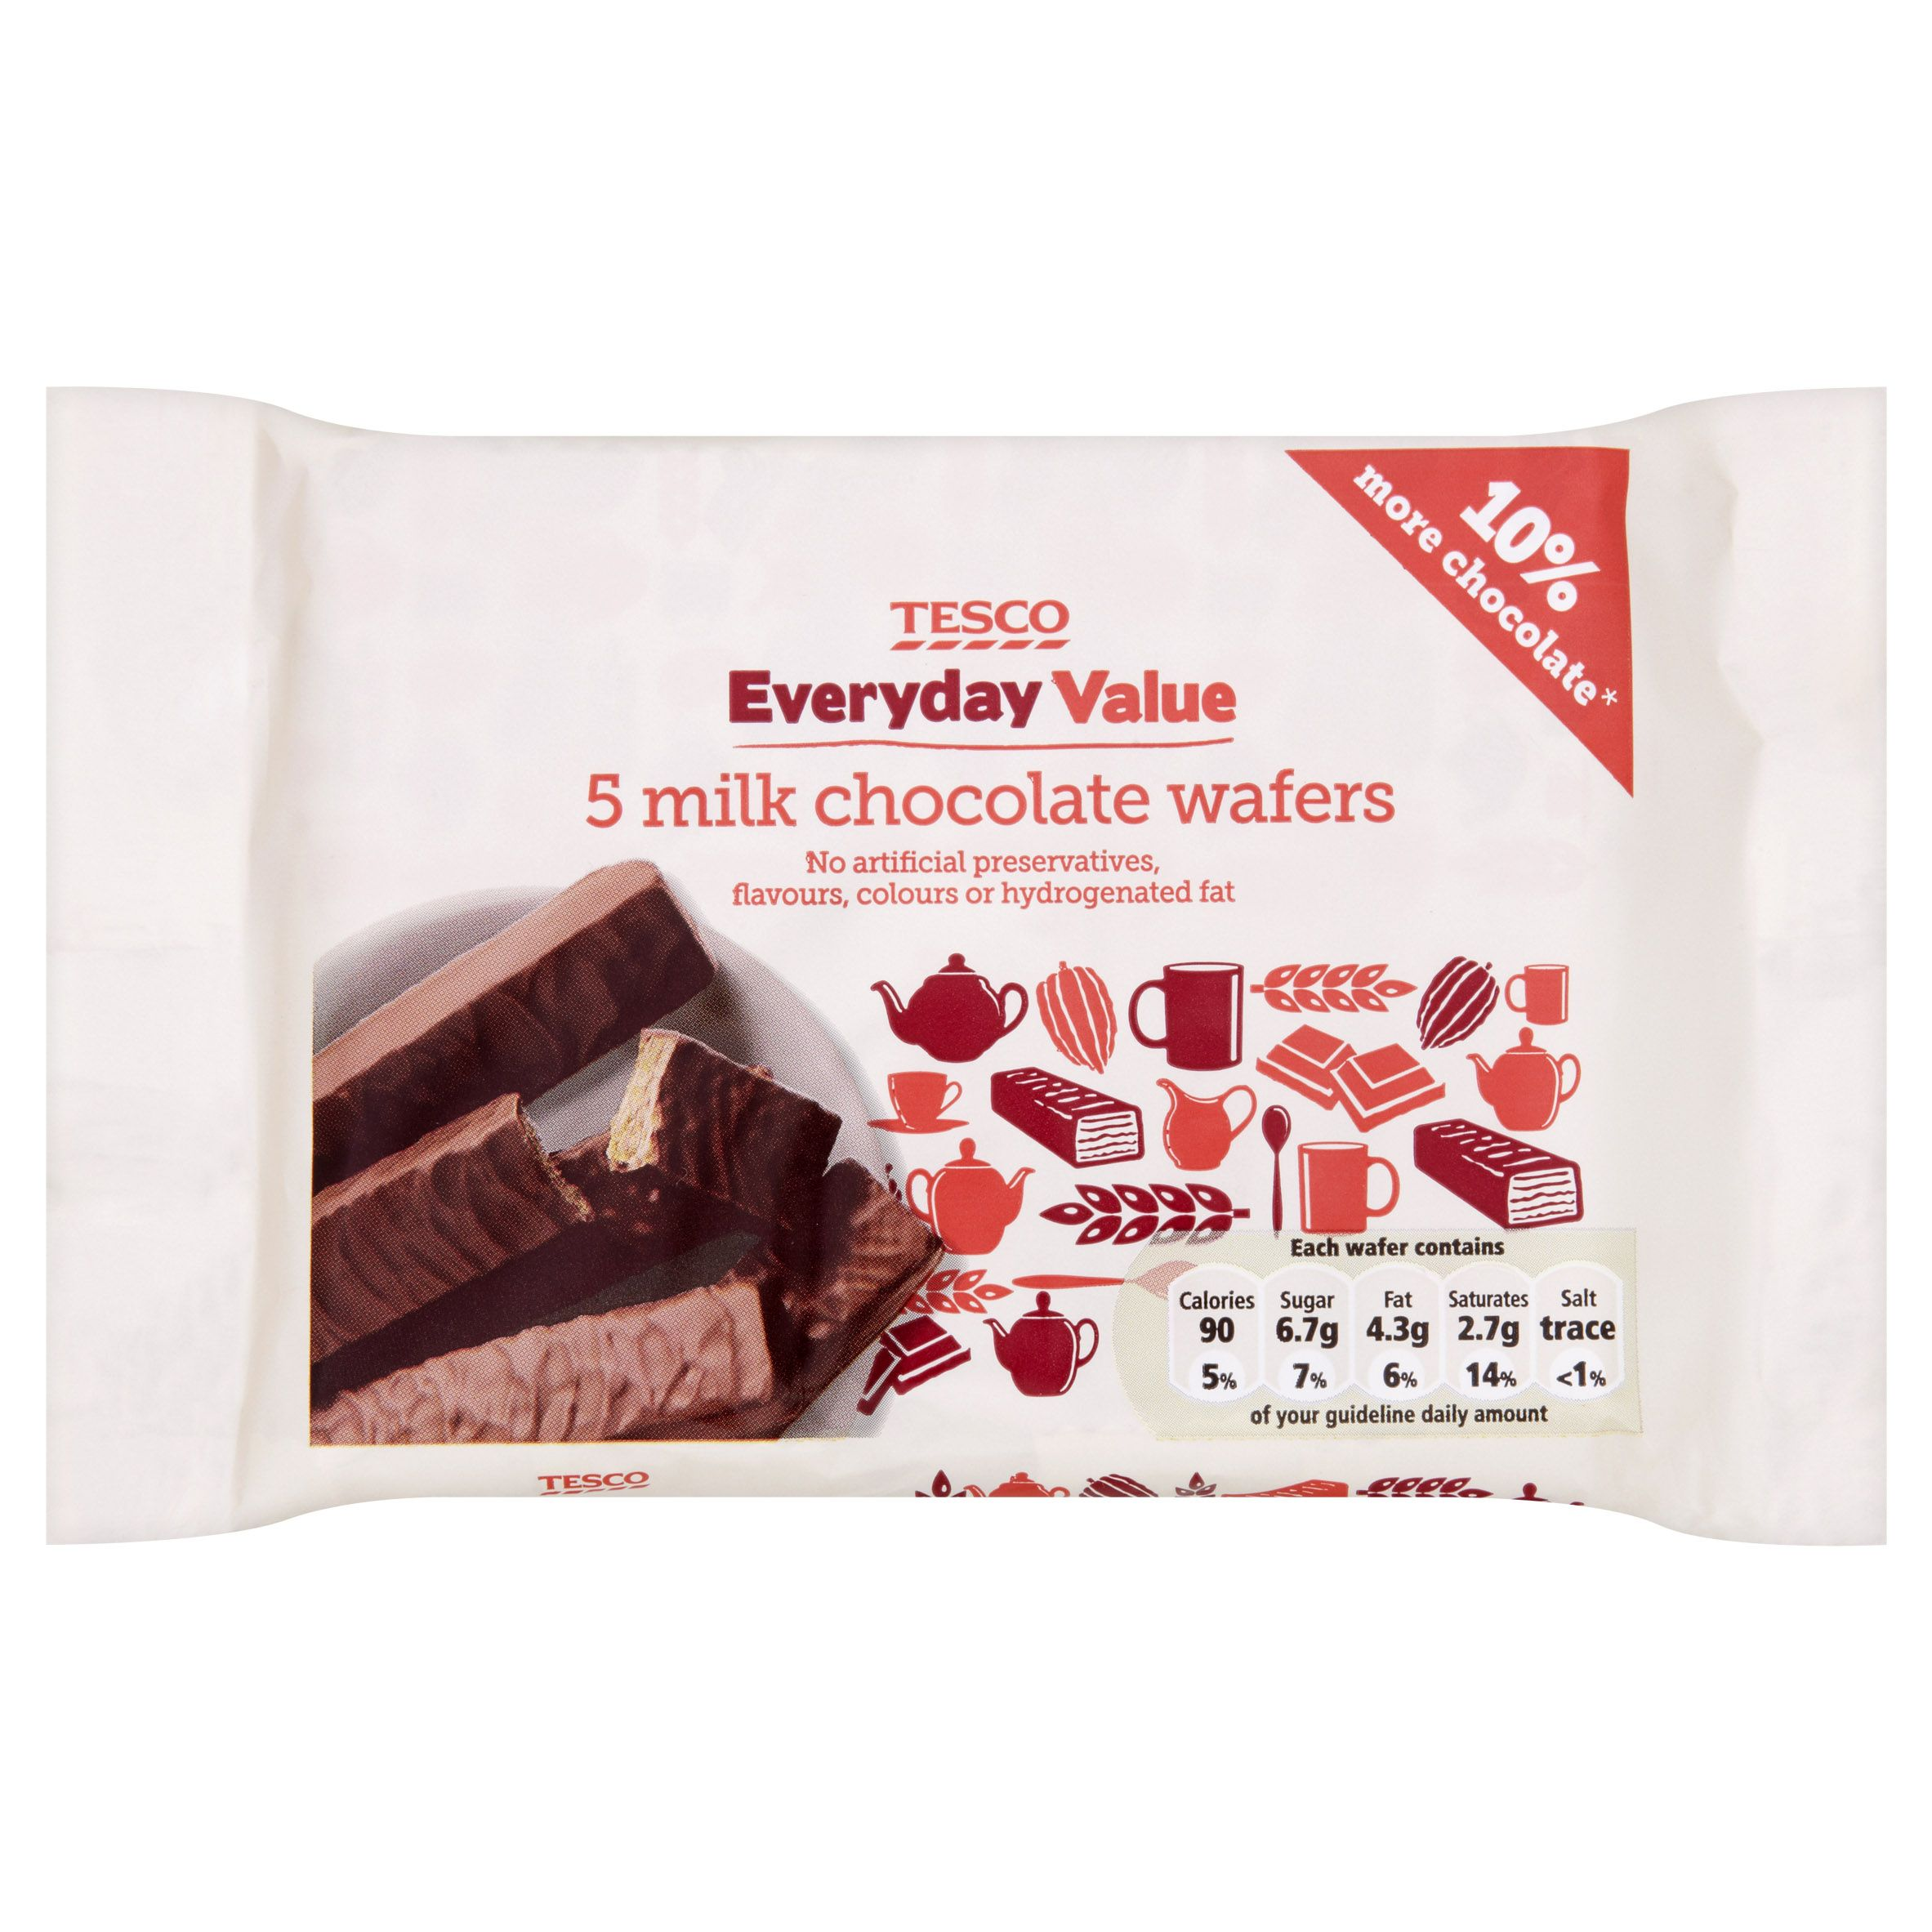 Tesco Everyday Value! 5 milk chocolate wafers. | Tesco Product ...